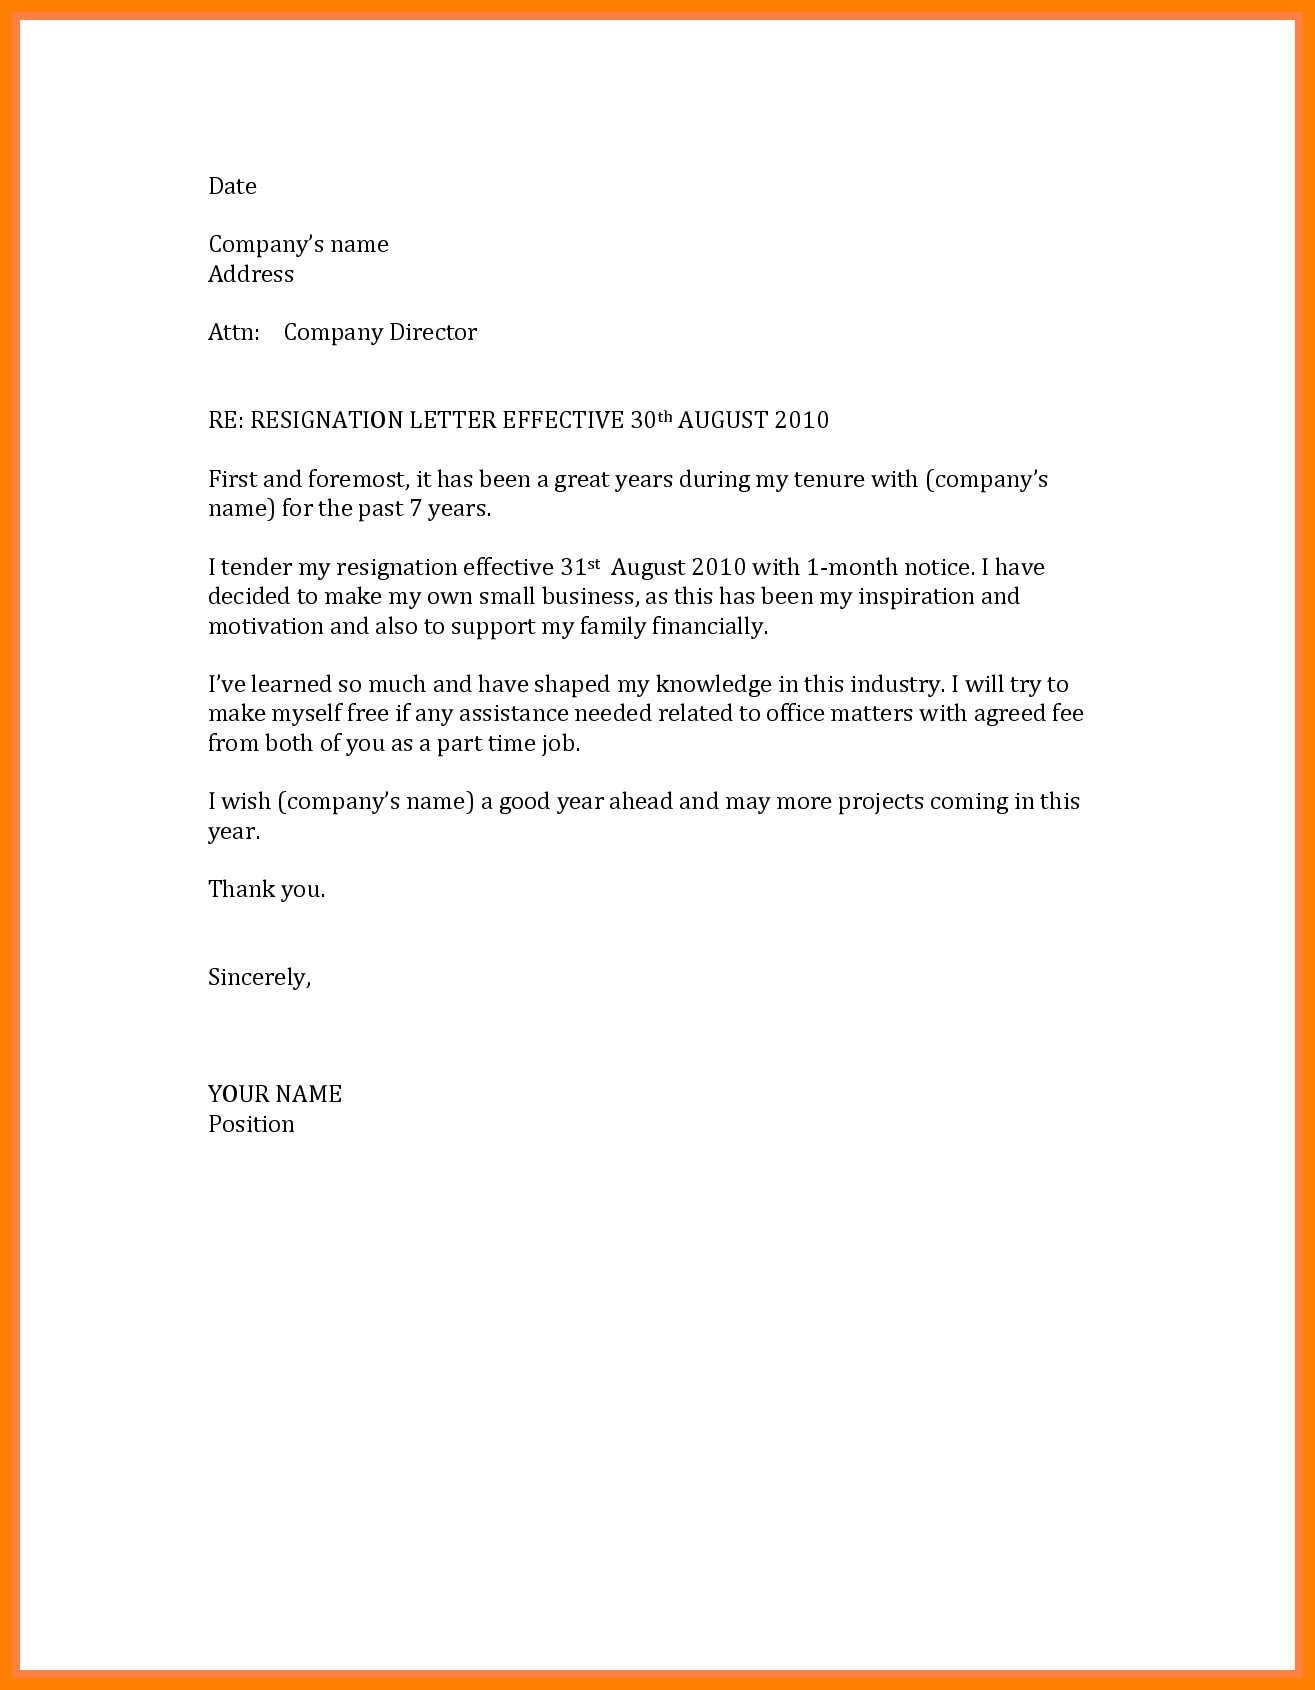 Basic Resignation Letter Template - Resignation Letter New Job Opportunity Fresh Sample Job Resignation